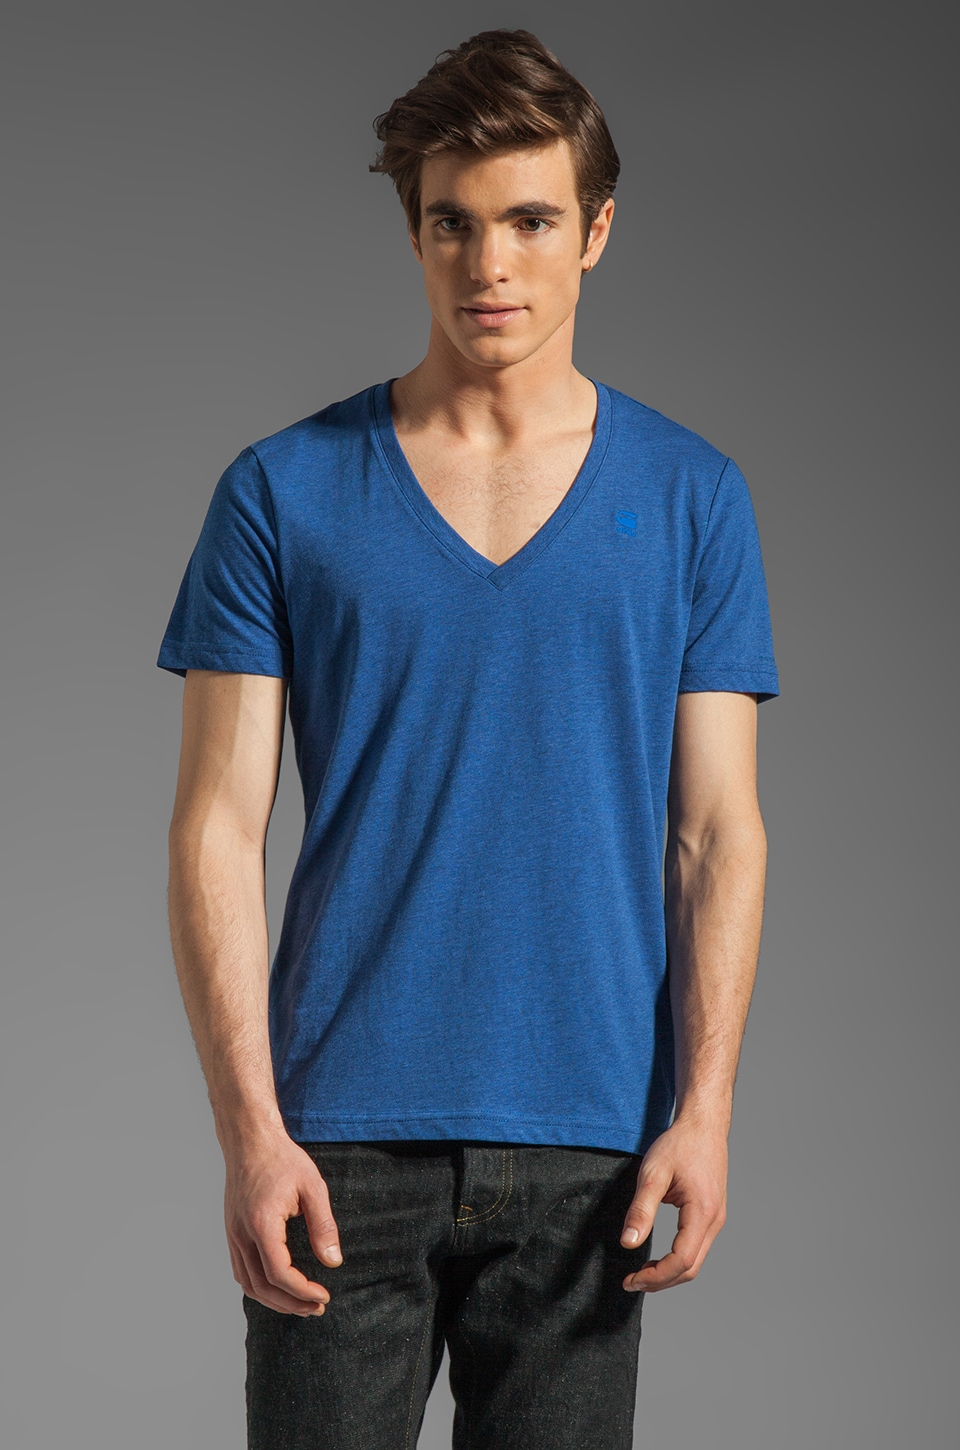 G-Star Heather V Neck 2 Pack in True Blue